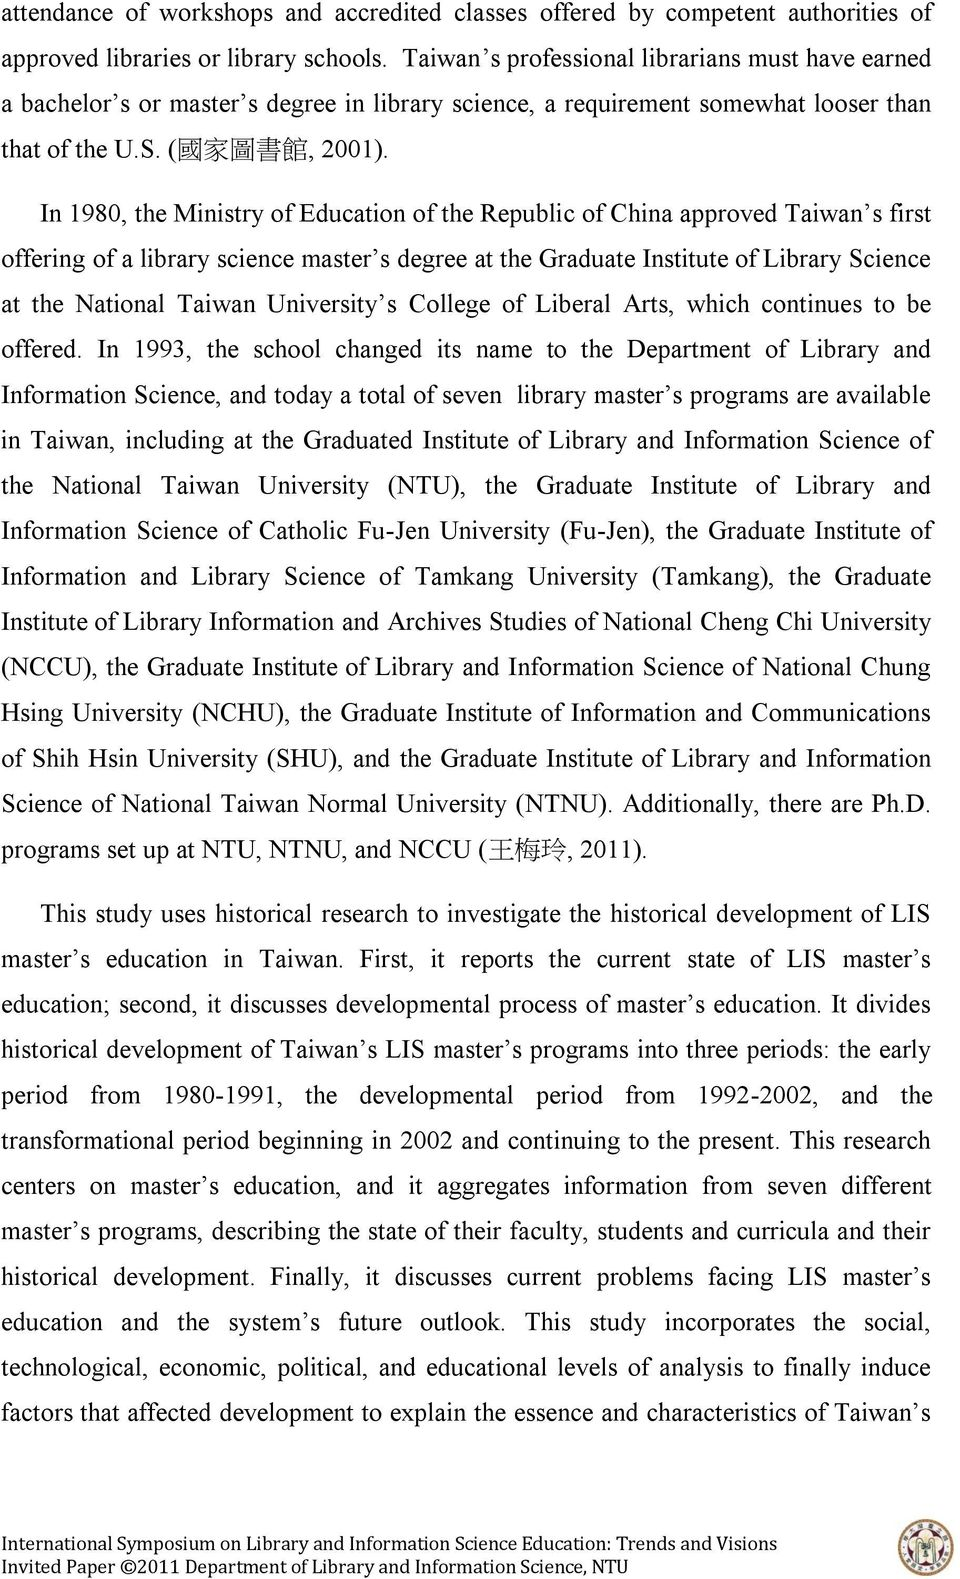 In 1980, the Ministry of Education of the Republic of China approved Taiwan s first offering of a library science master s degree at the Graduate Institute of Library Science at the National Taiwan